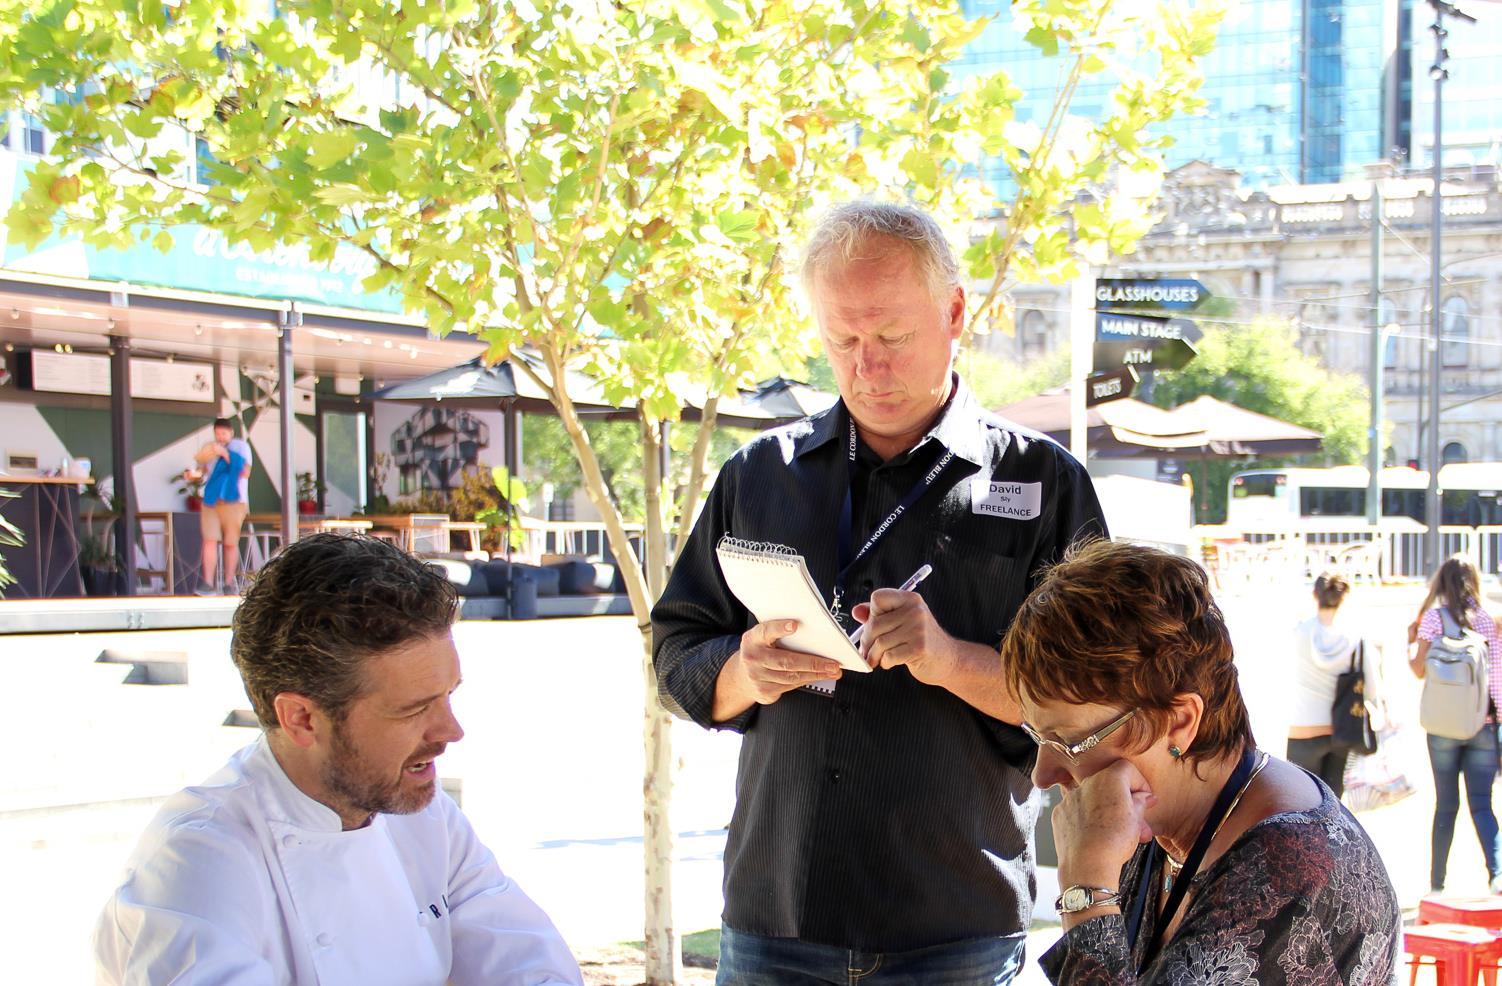 Master's students connect at Adelaide events